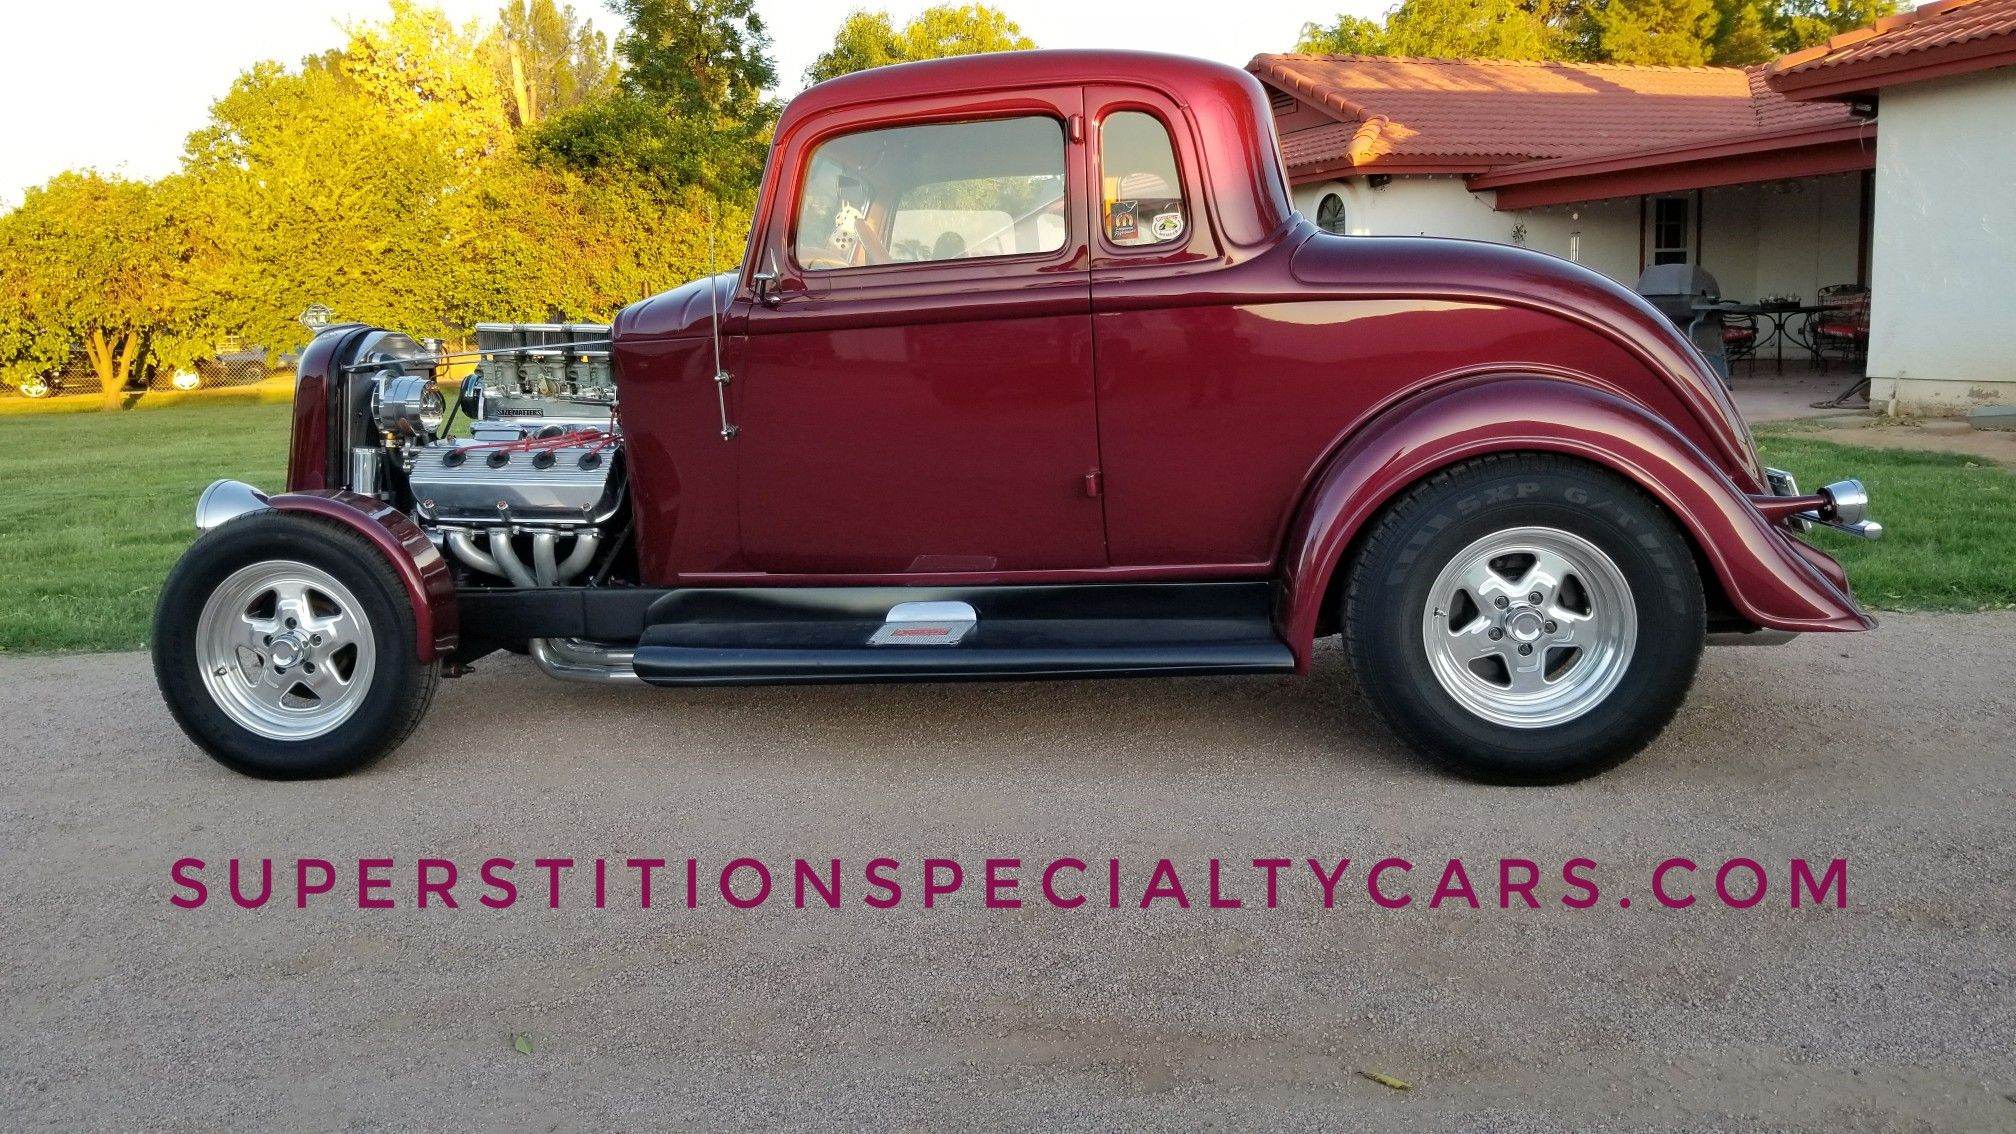 Pin by Douglas Breithaupt on Cars I Have Owned But Sold